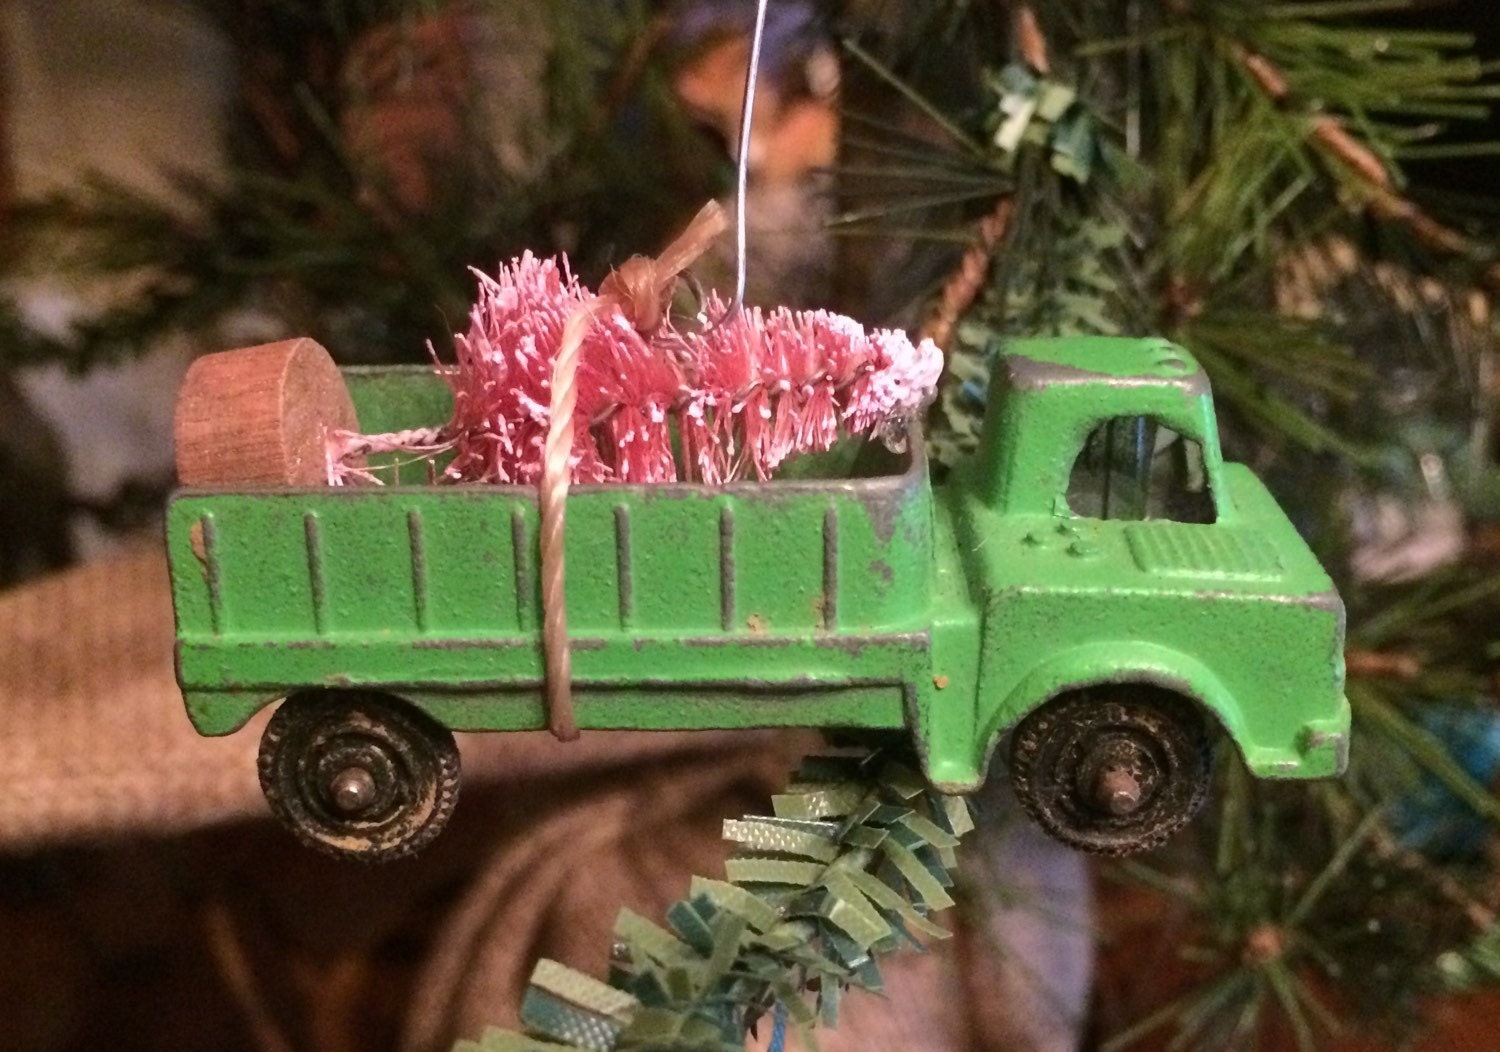 SALE Vintage Truck Carrying PINK Christmas Tree Ornament